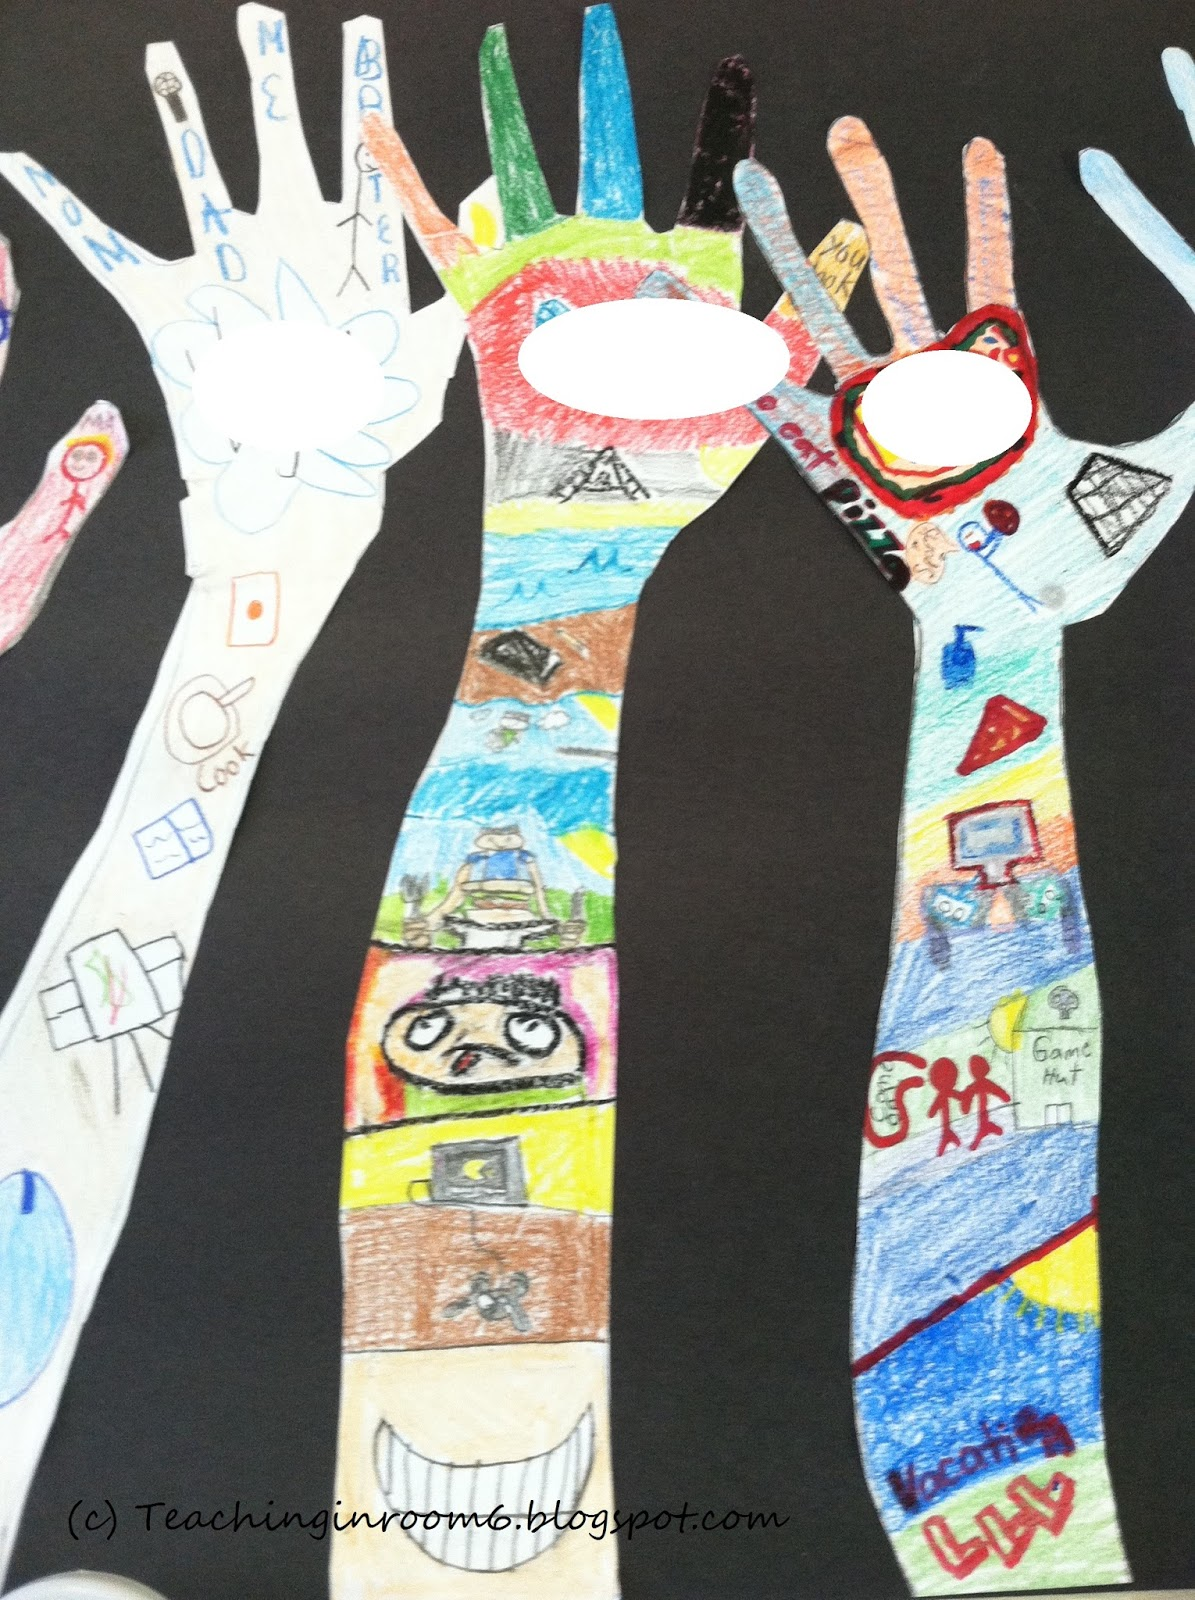 All hands in teaching in room 6 for Arts and crafts for middle school